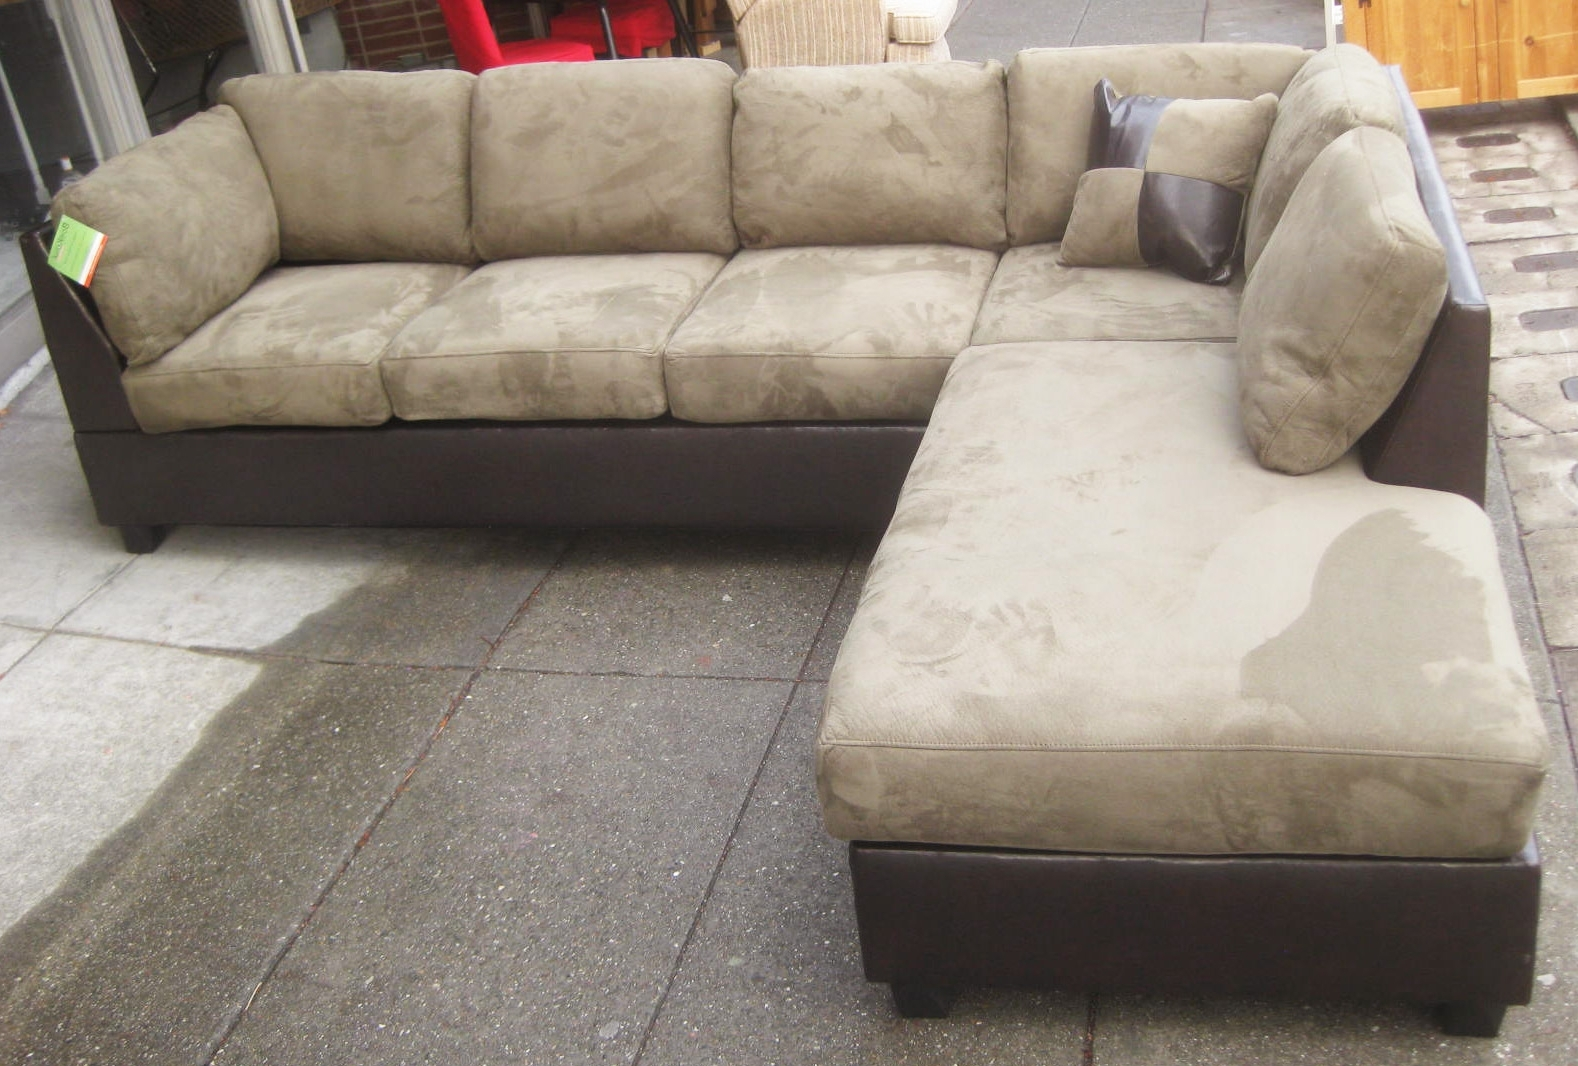 Microsuede Sectional Sofas In Latest Uhuru Furniture & Collectibles: Sold – Leather & Microsuede (View 5 of 15)